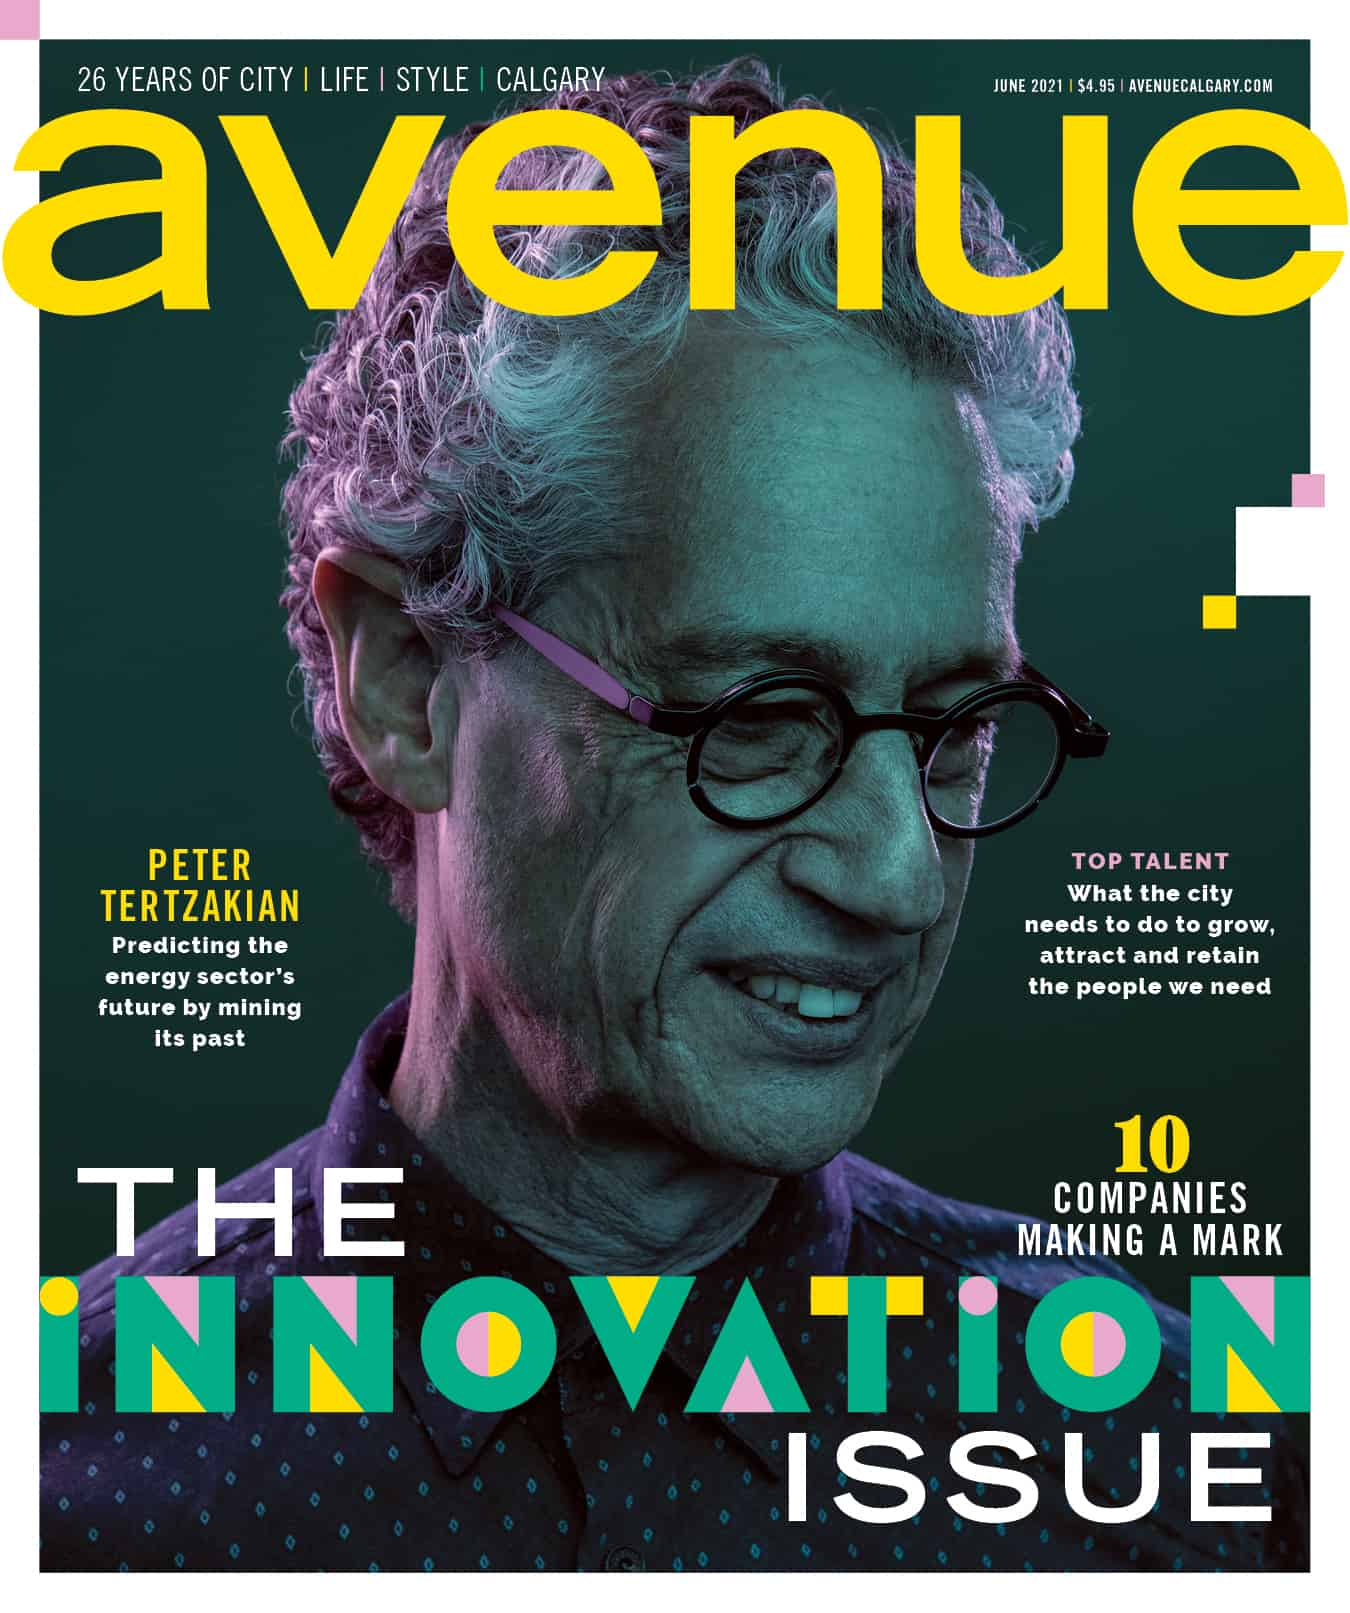 Peter Tertzakian on the cover of Avenue Magazine's Innovation Issue